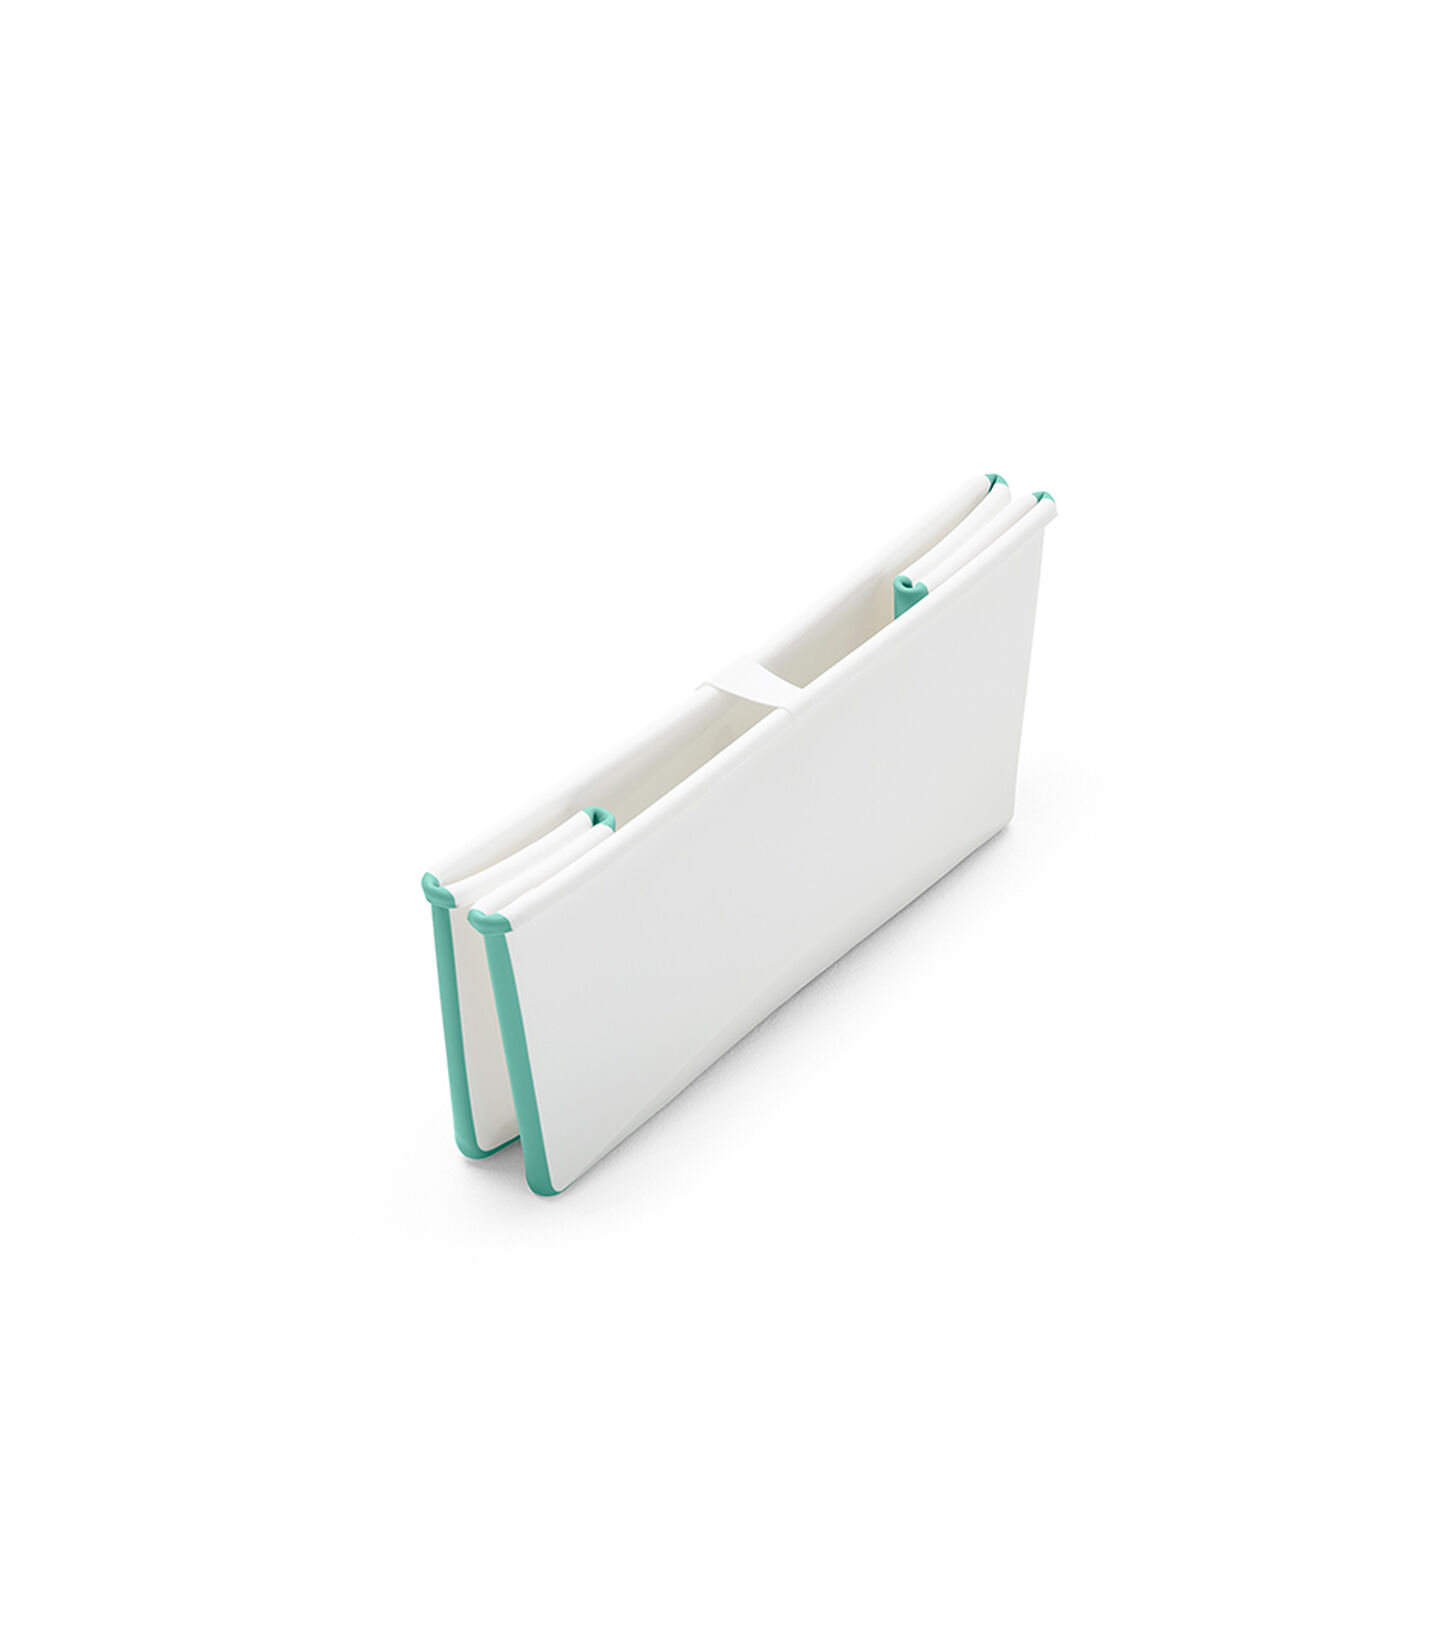 Stokke® Flexi Bath® bath tub, White Aqua. Folded.